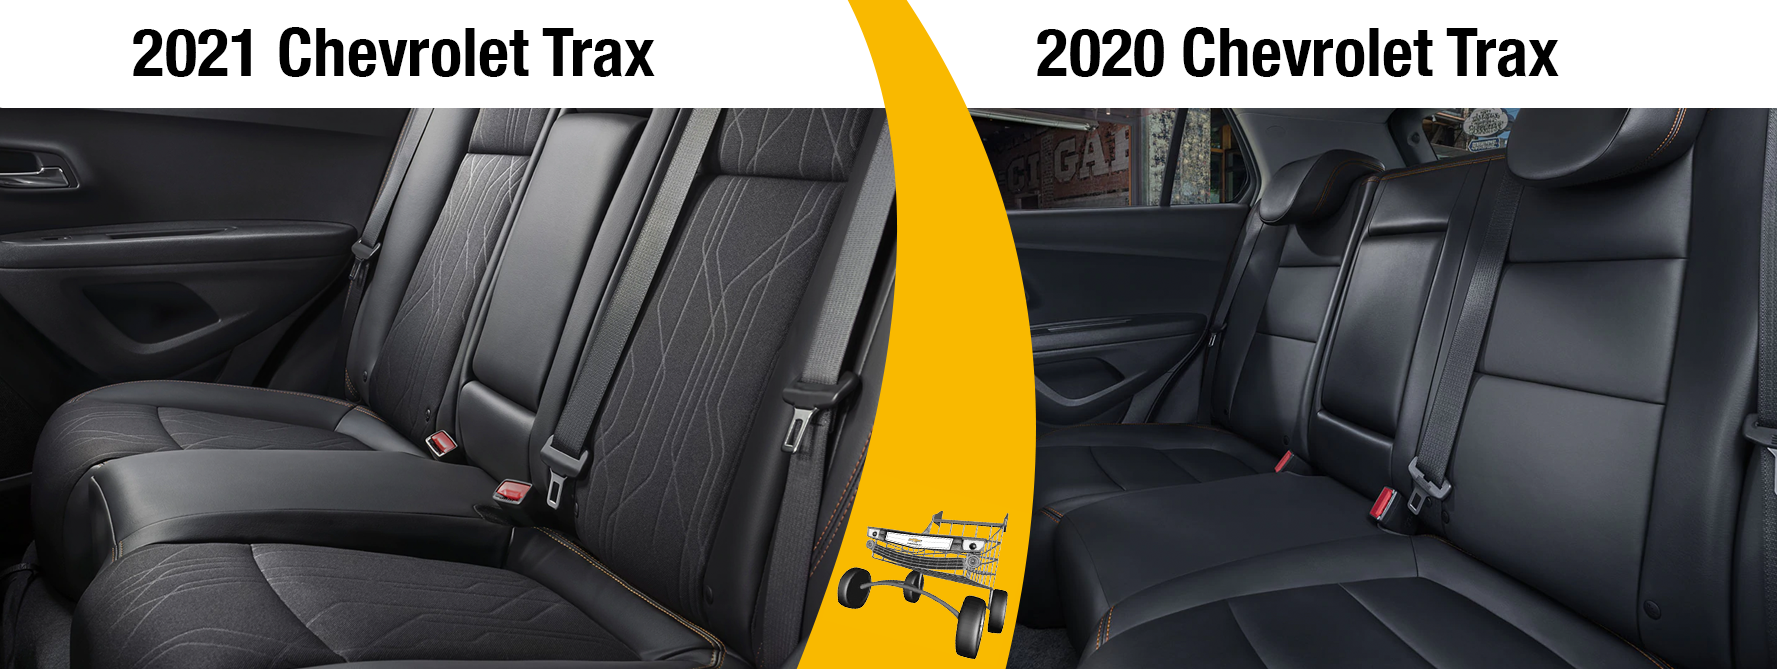 What's New for the 2021 Trax?